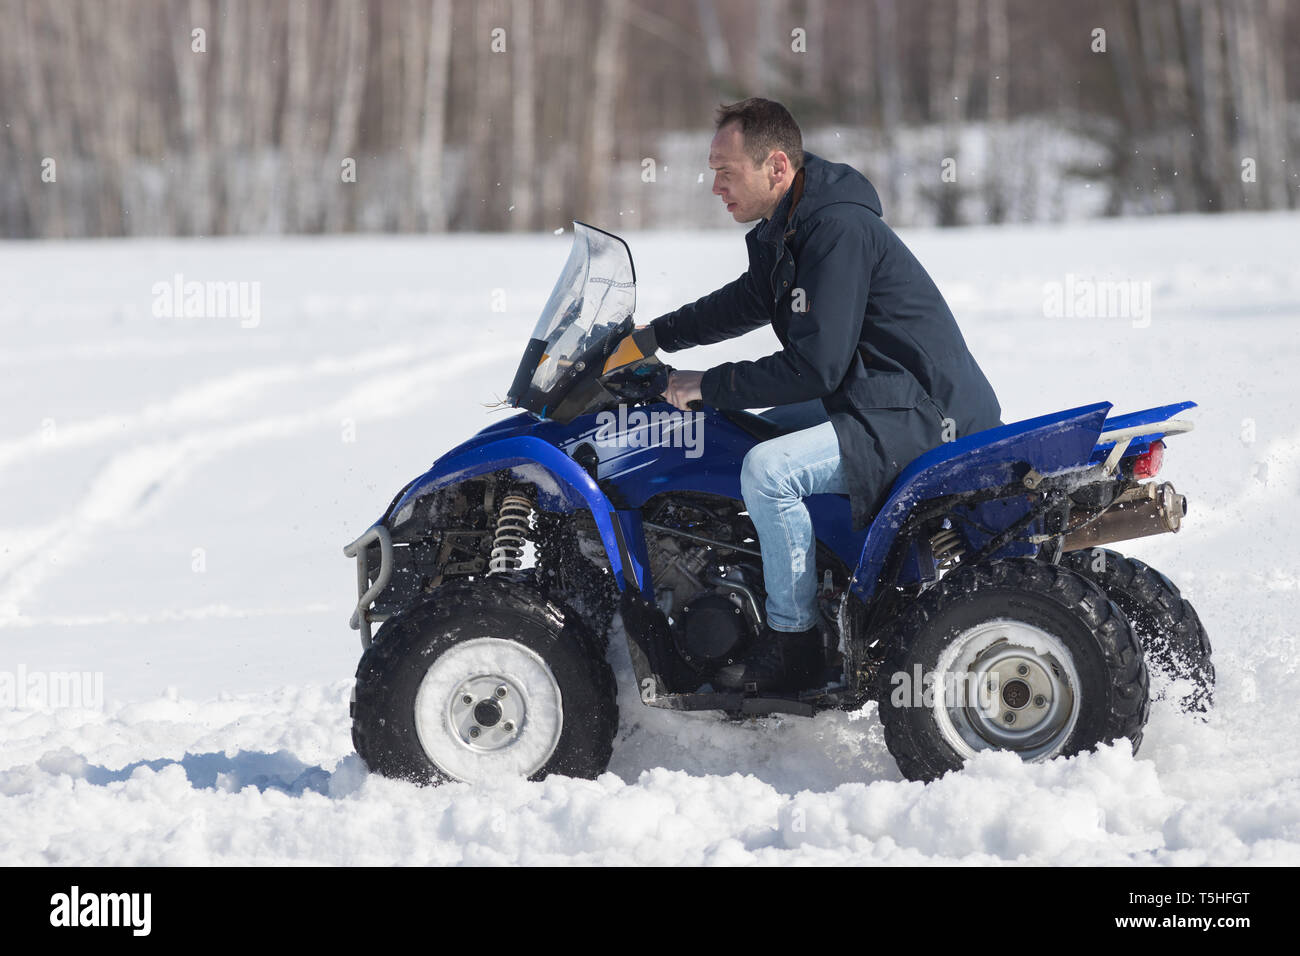 A winter forest in daylight. A man riding a big blue snowmobile - Stock Image